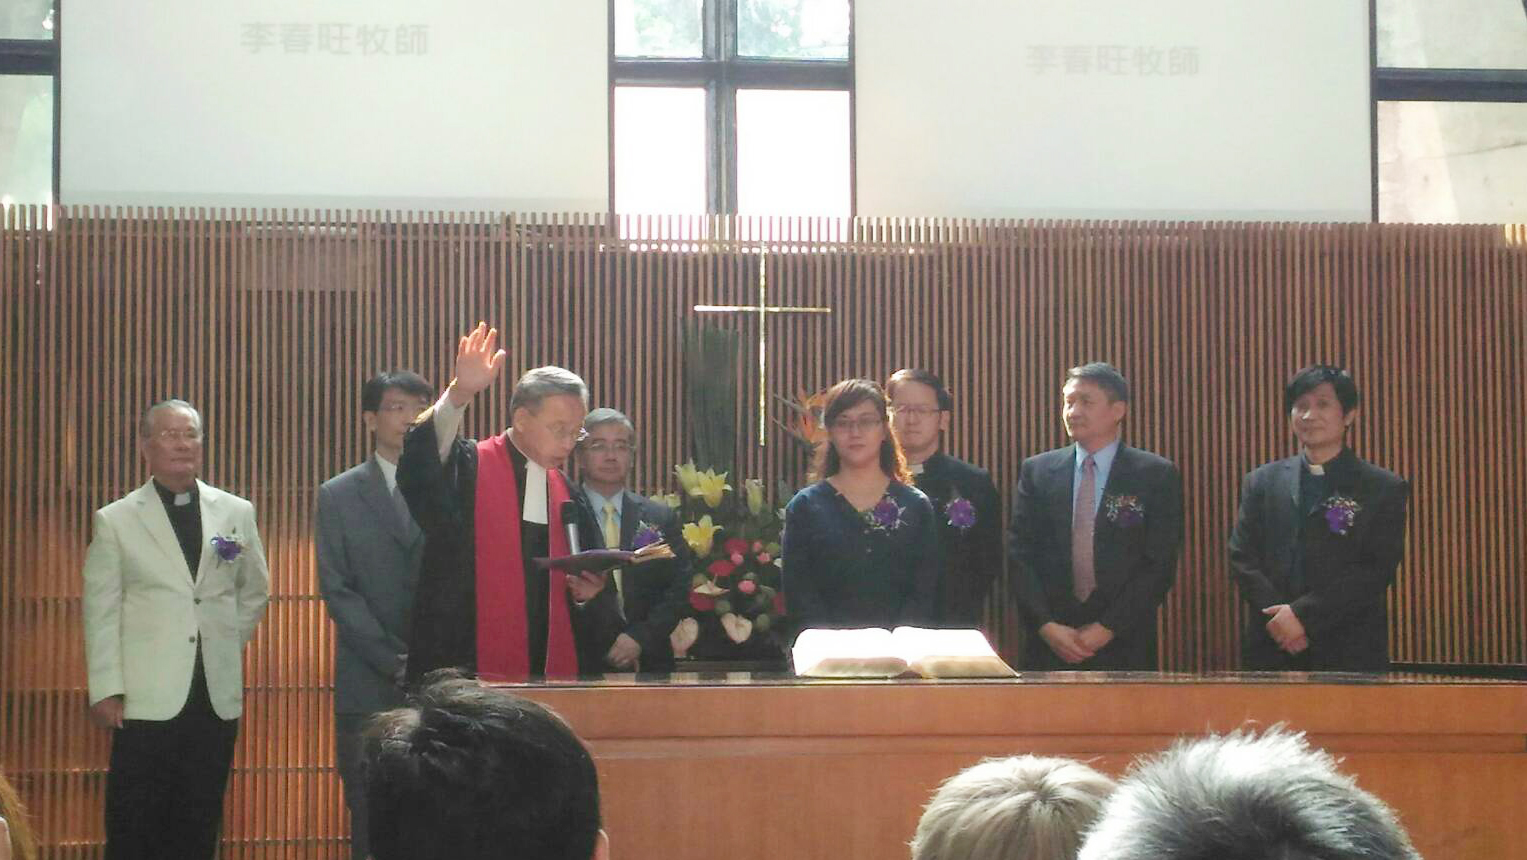 The Tunghai University Christian Church held a pastor ordination ceremony for former minister, Deborah Chung.